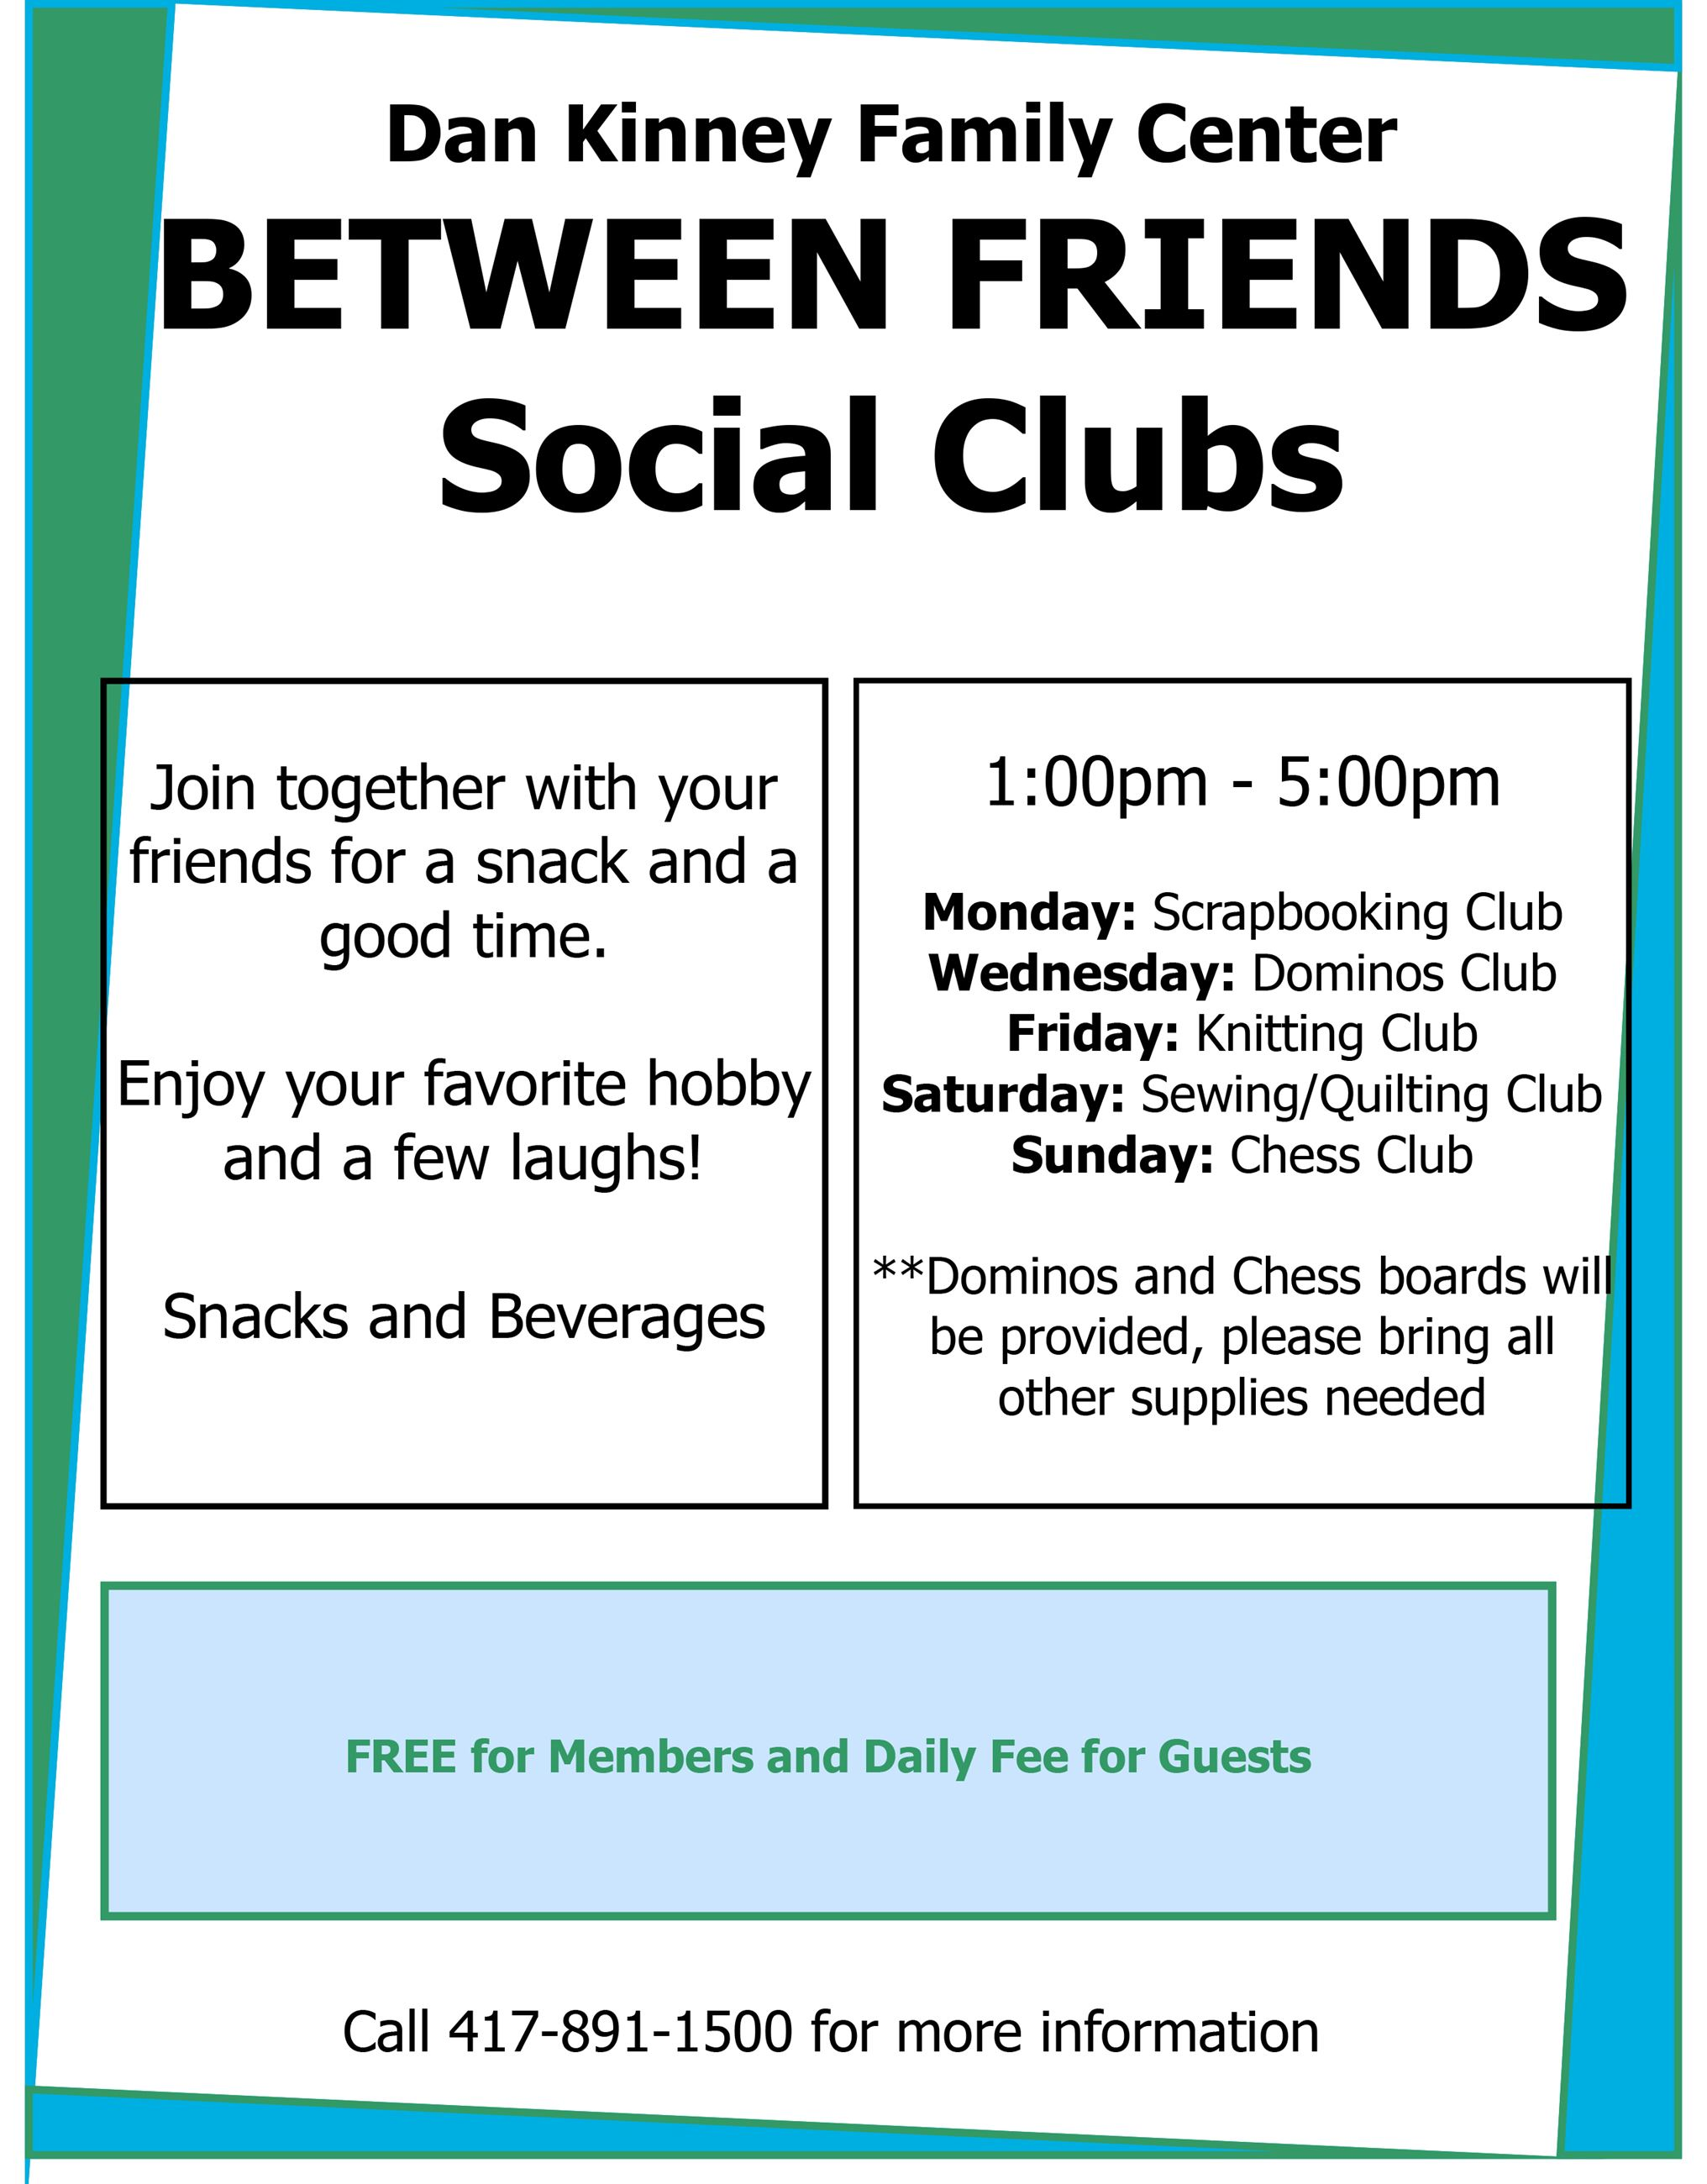 Between Friends Social Clubs (PDF)